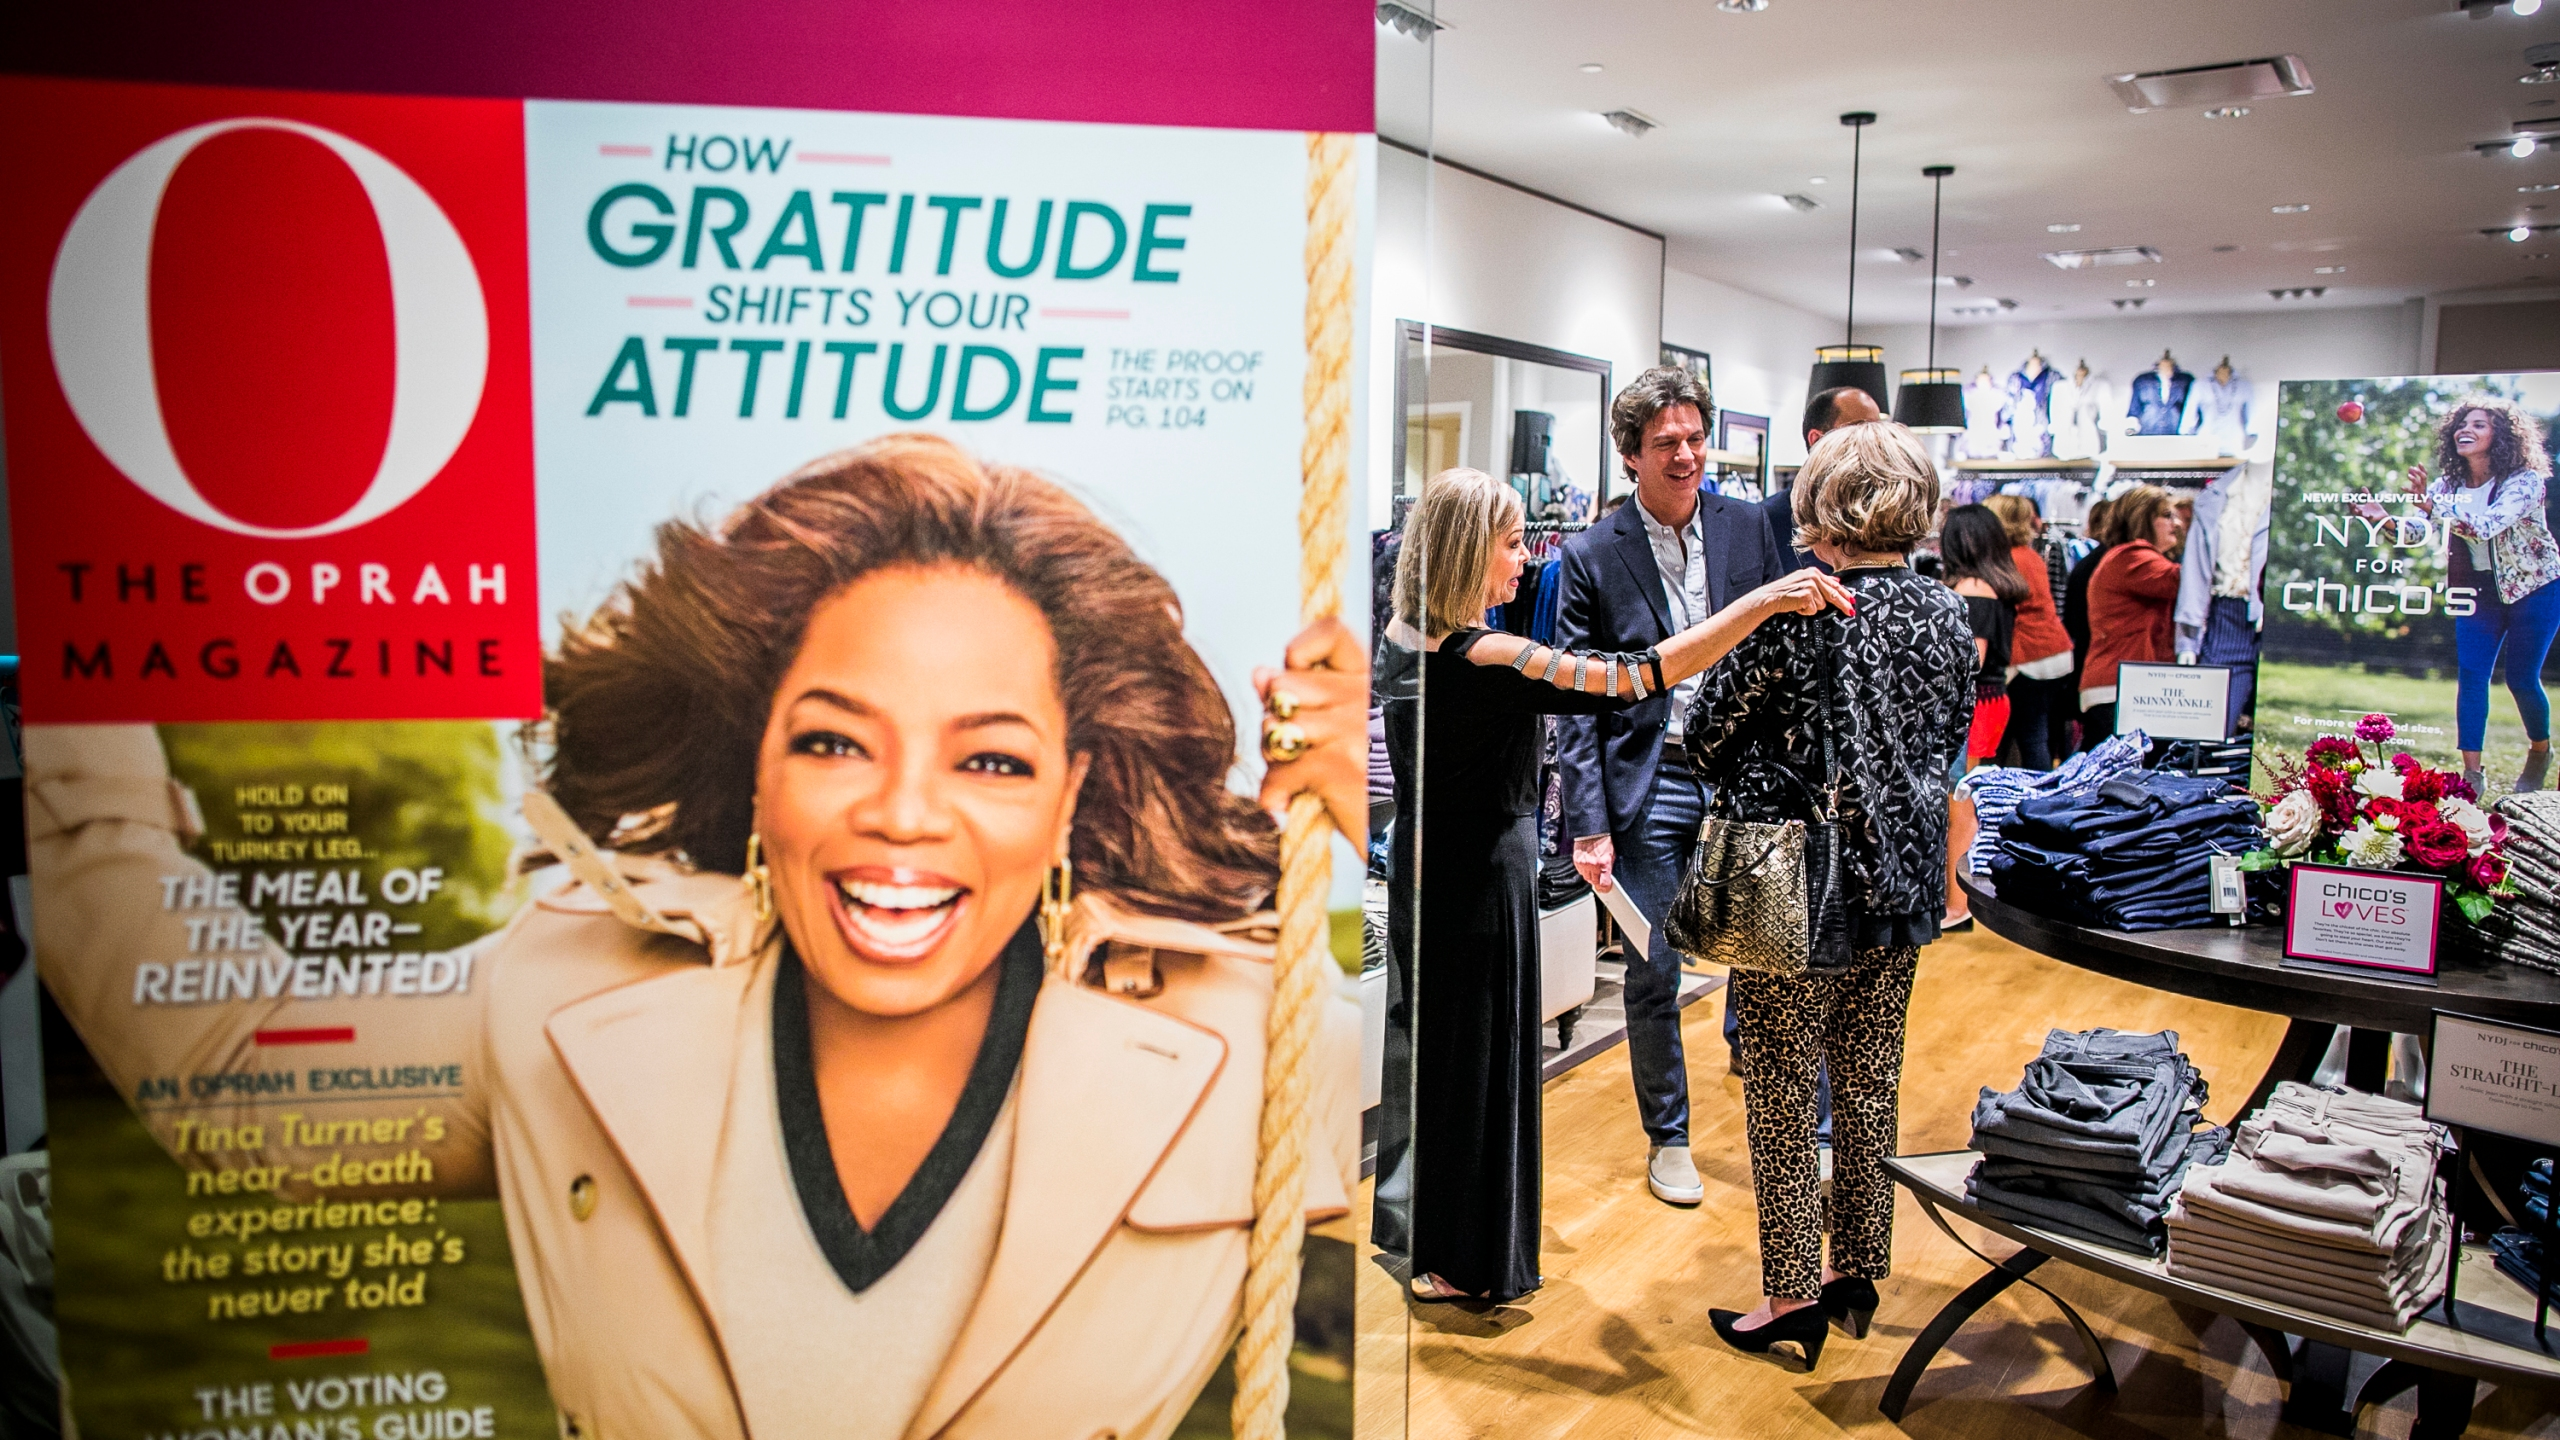 Adam Glassman, the former creative director at O Magazine, mingles with guests at Chico's Houston Galleria on Oct. 18, 2018 in Texas. (Drew Anthony Smith/Getty Images for Chico's)